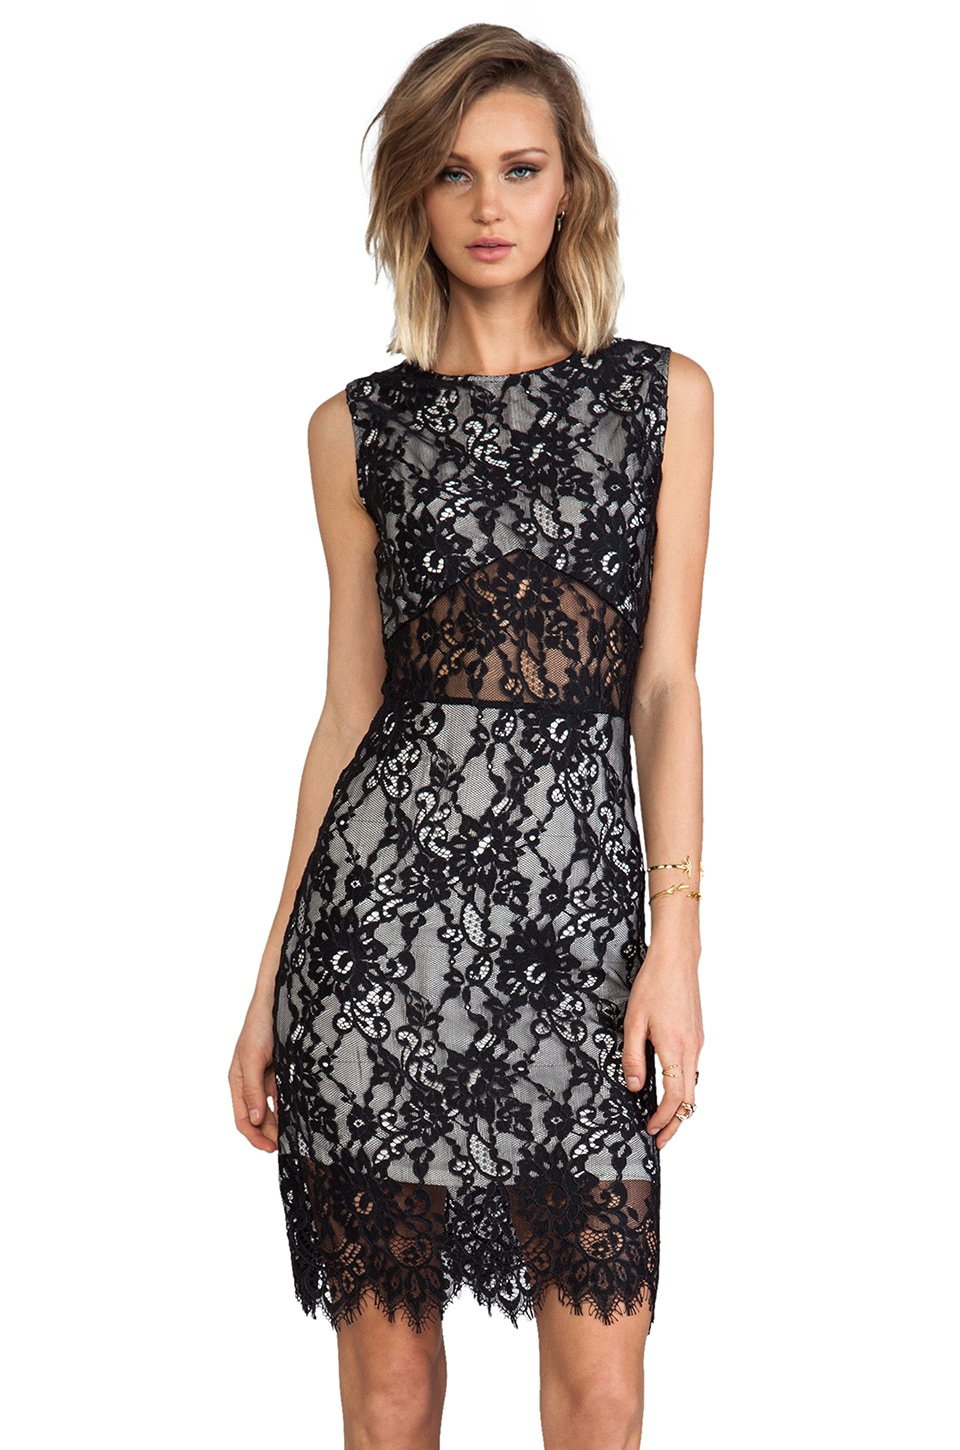 Alexis Kruse Short Lace Dress in Black Lace